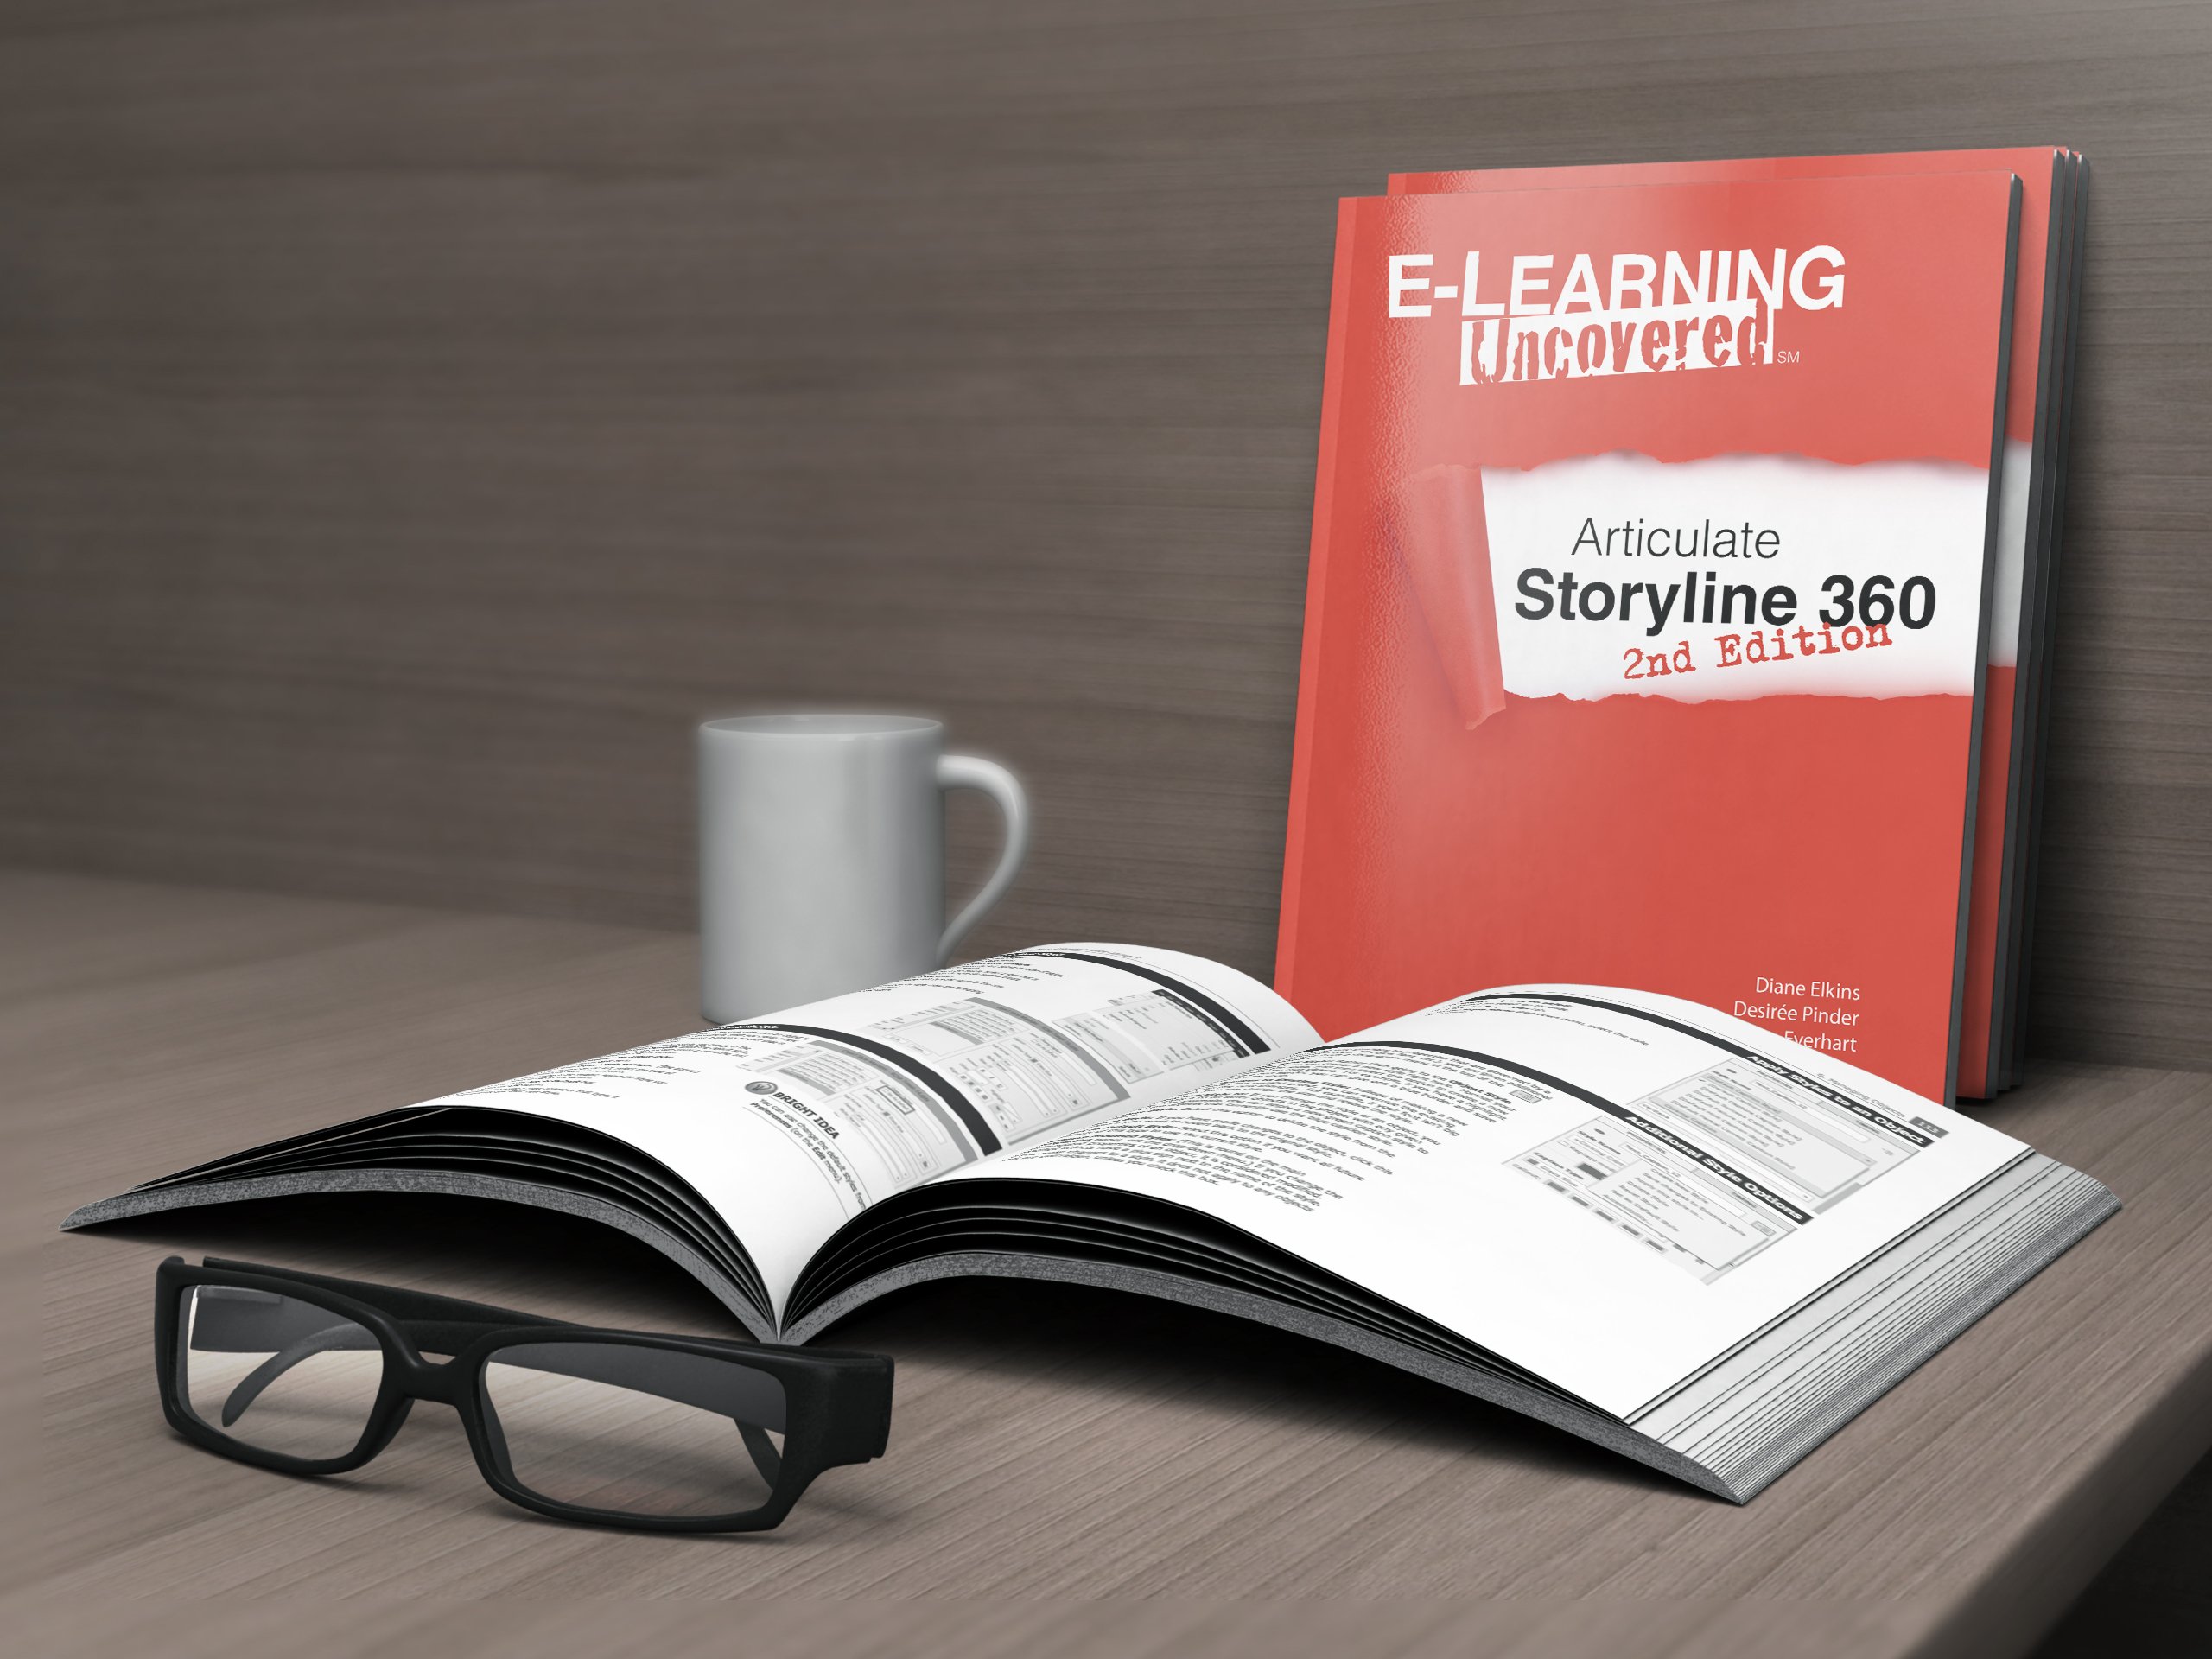 Articulate Storyline 360 Book